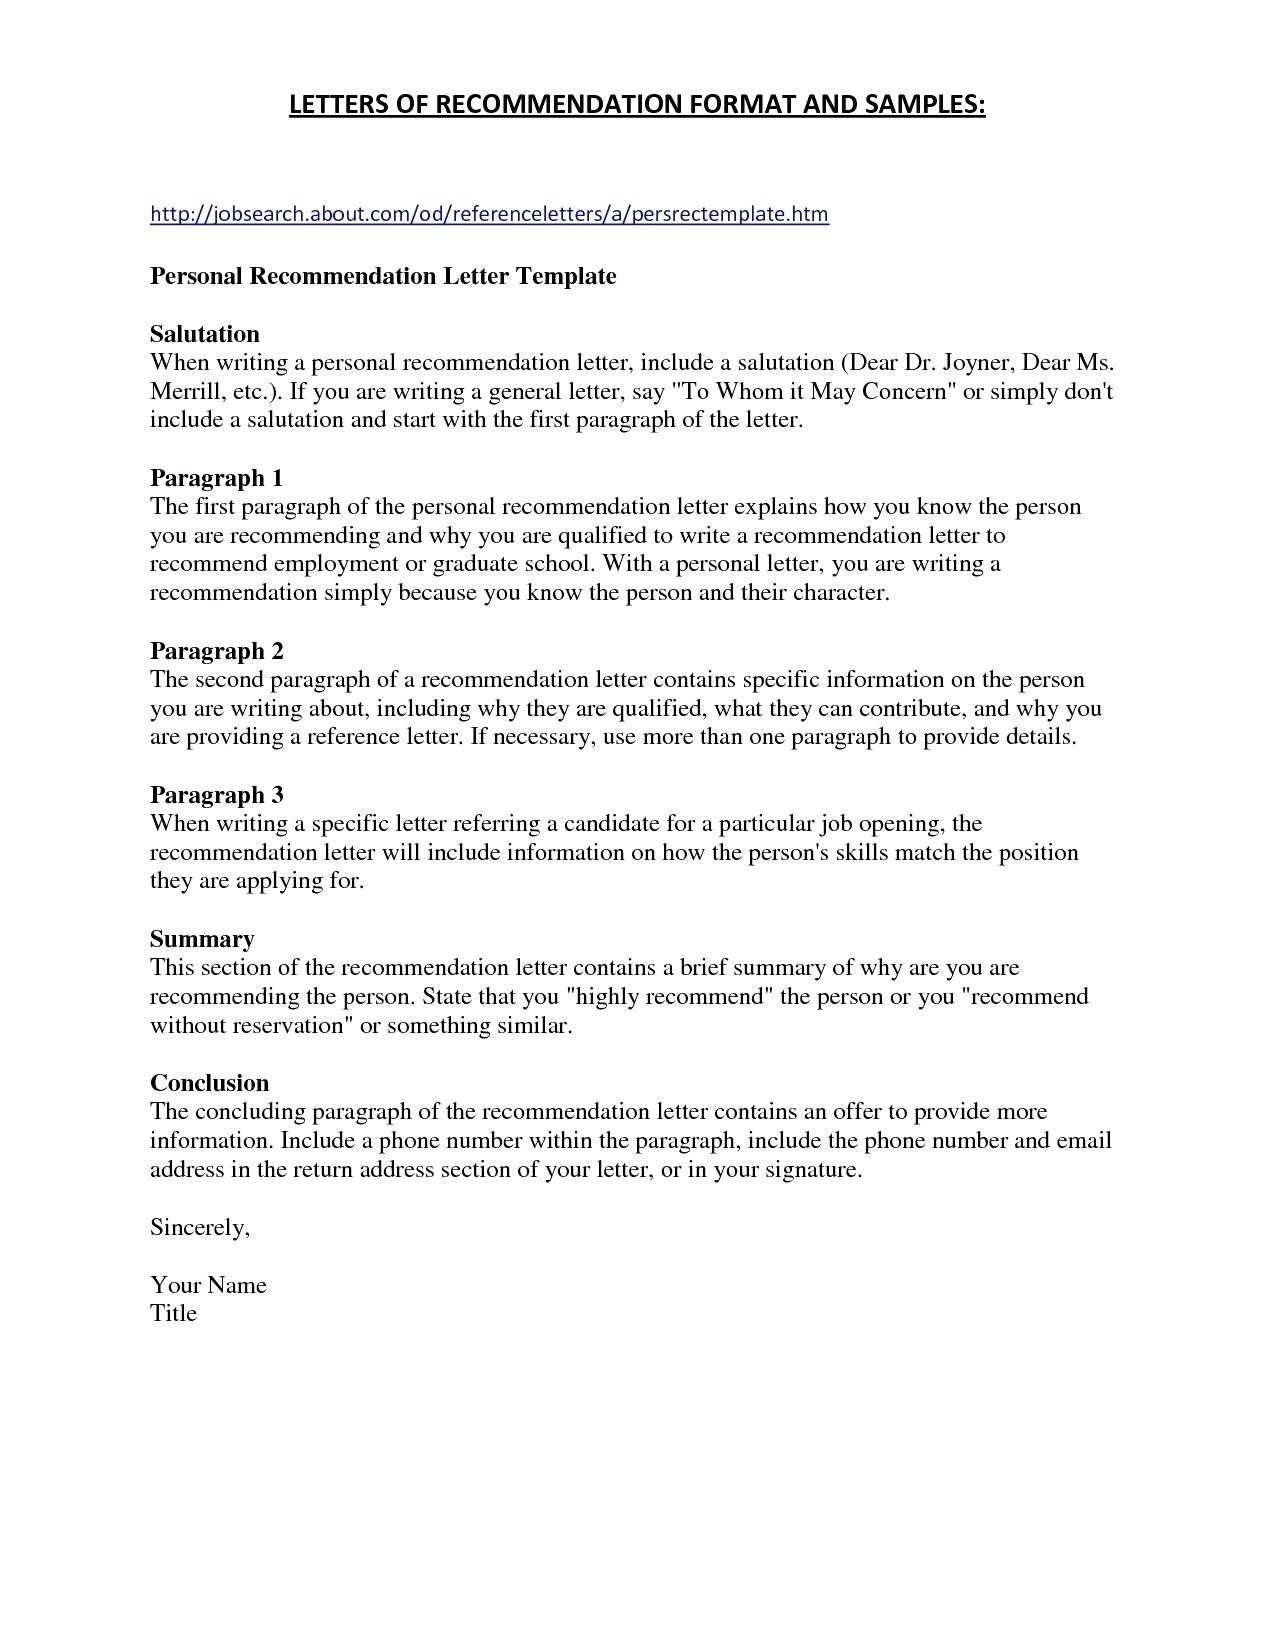 Non Disclosure Letter Template - Non Disclosure Statement Template with Business Disclosure Letter